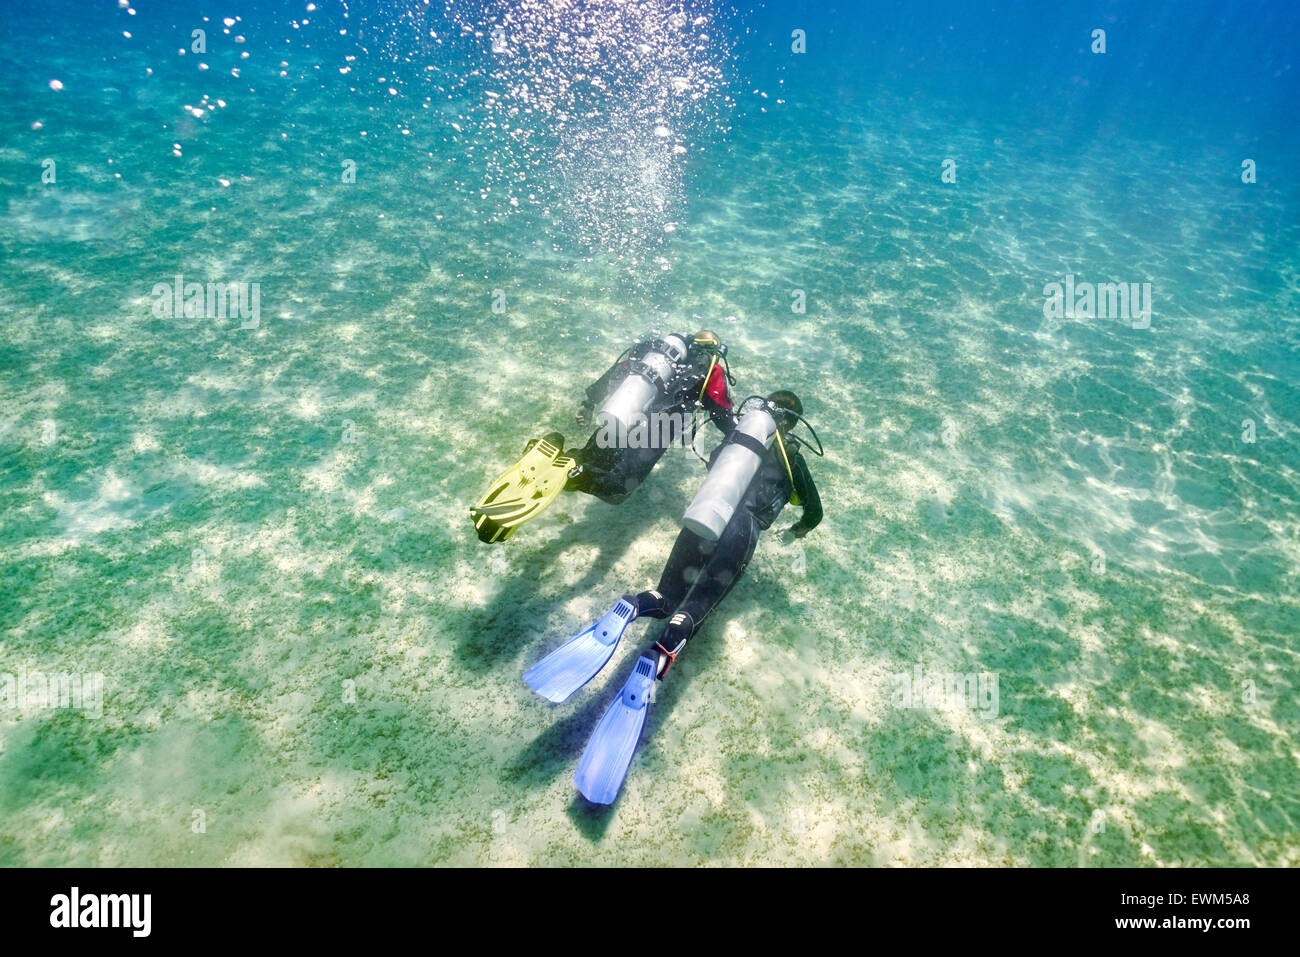 Marsa Alam, Red Sea, Egypt - dive instructor with novice diver, first underwater dive - Stock Image